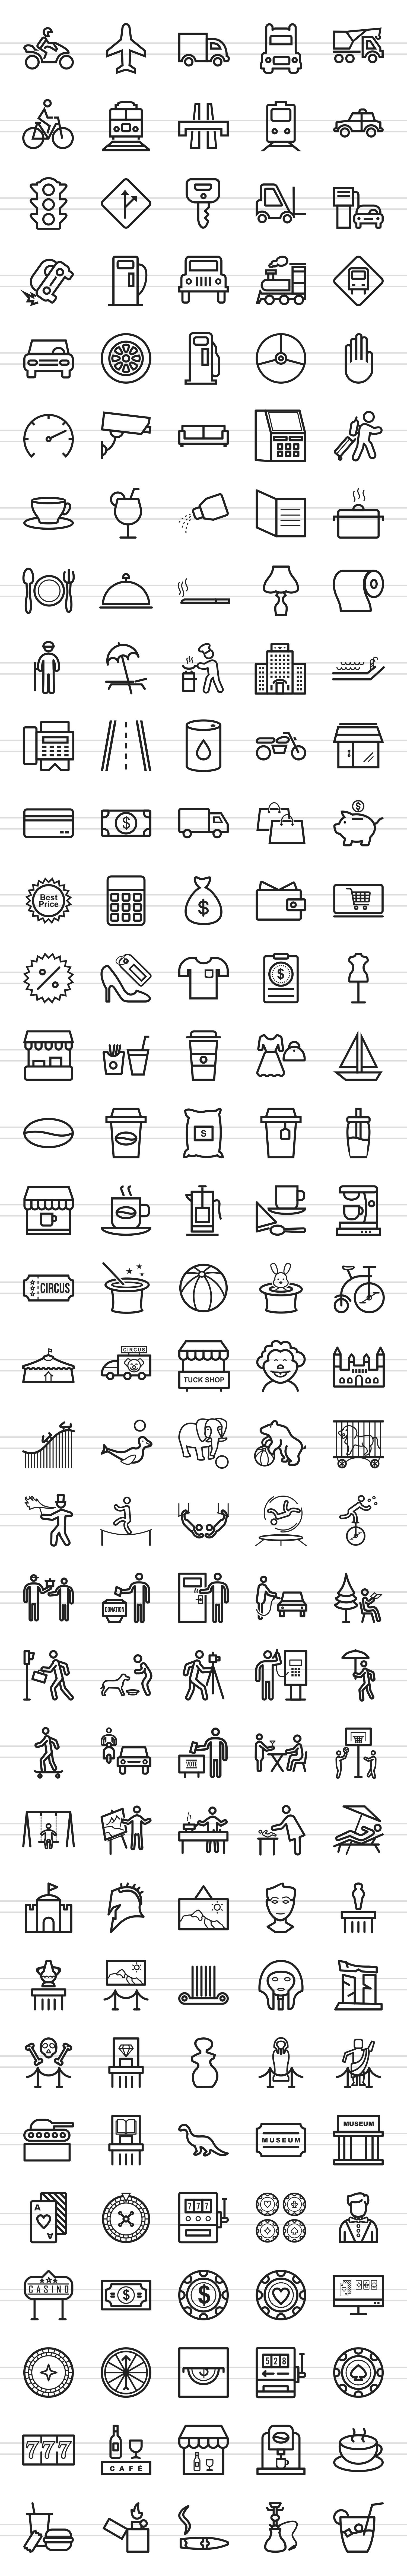 166 City Life Line Icons example image 2